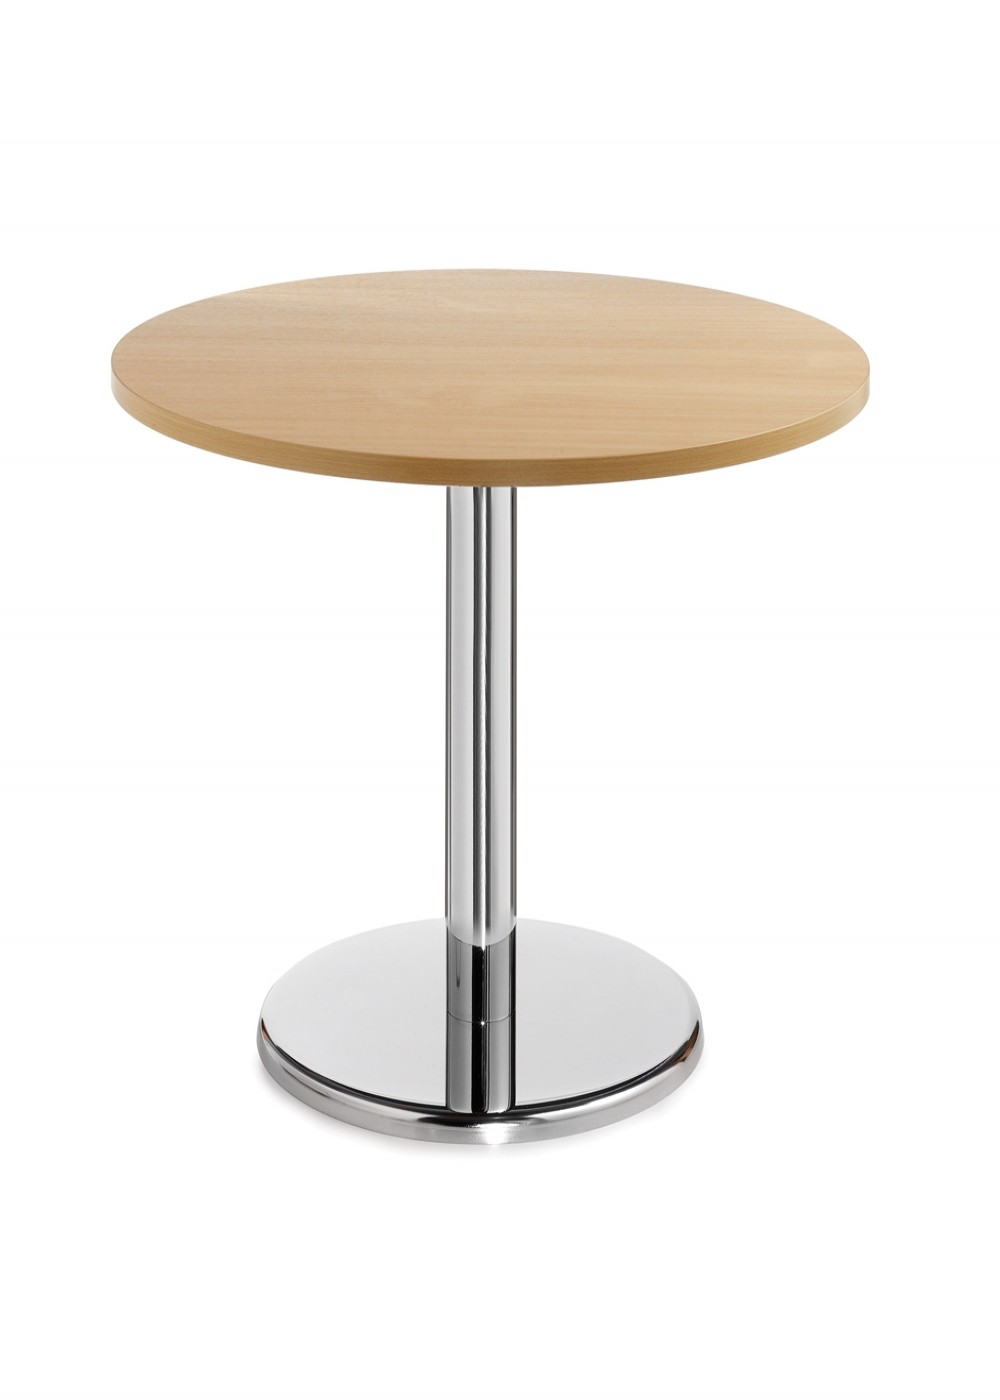 Amazing Office Furniture Manufacturer Metal Table Legs SE133 View I Shaped